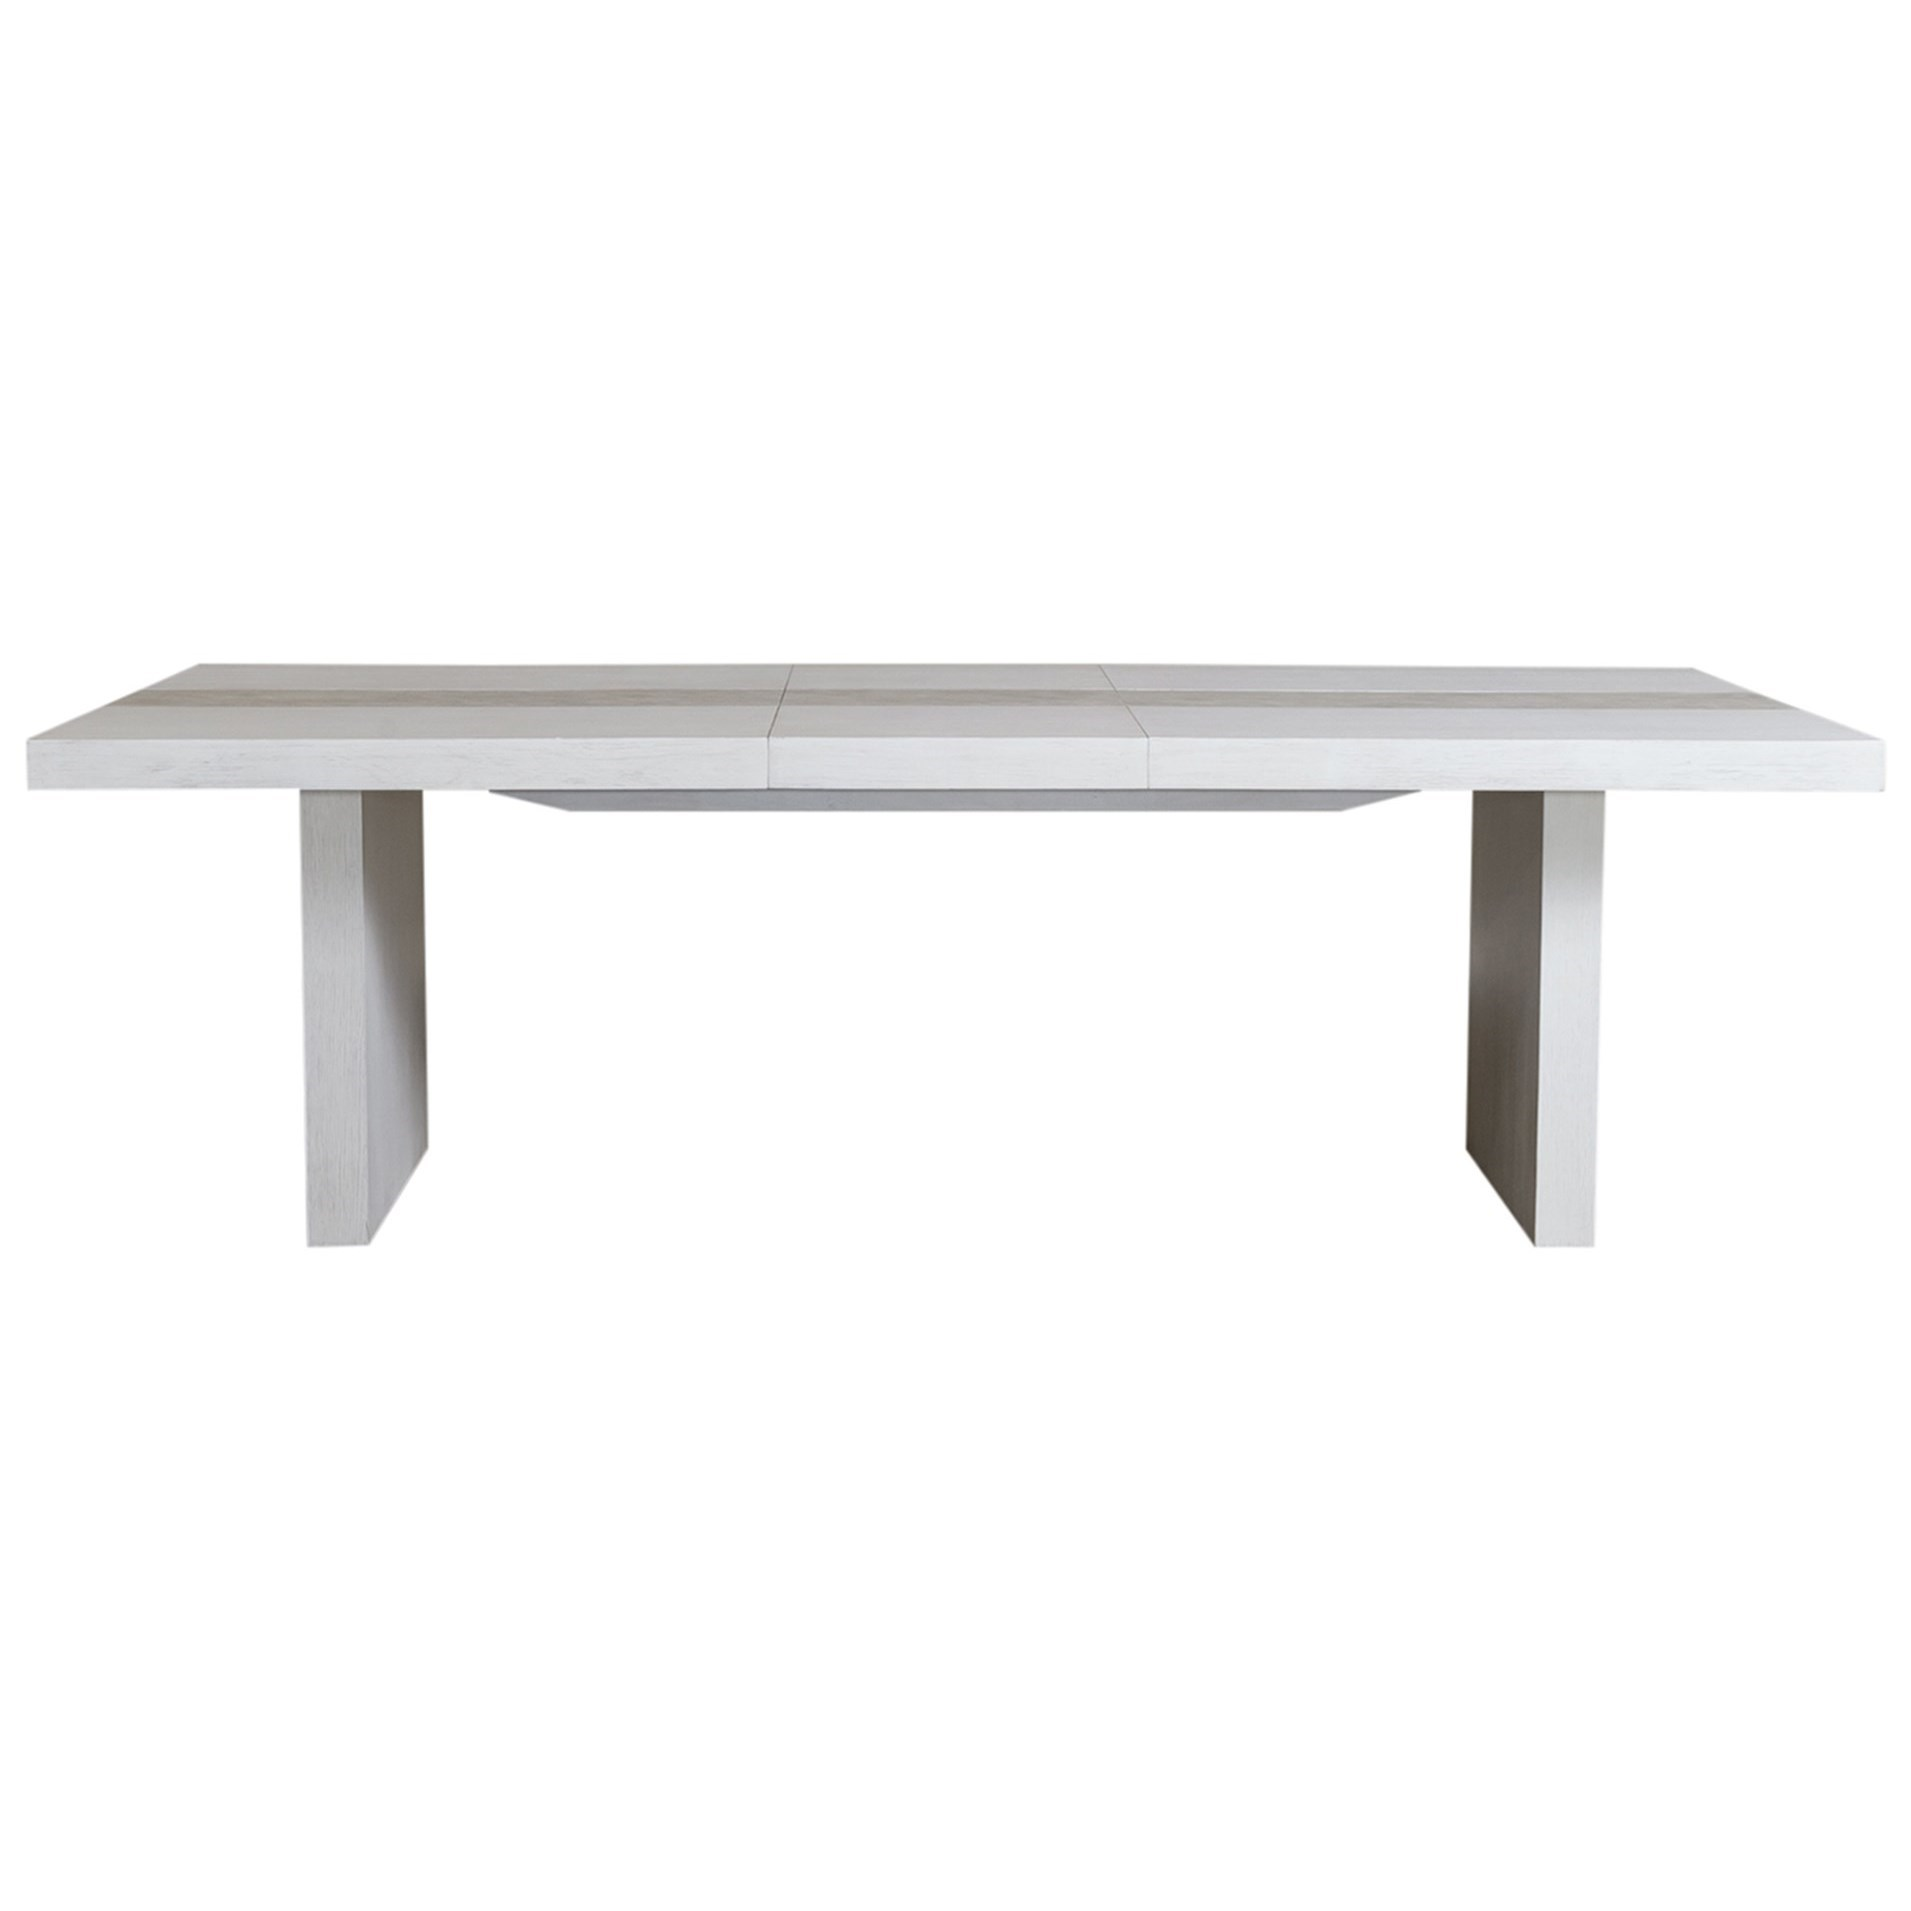 Mirage - 946 Dining Table  by Liberty Furniture at Lapeer Furniture & Mattress Center